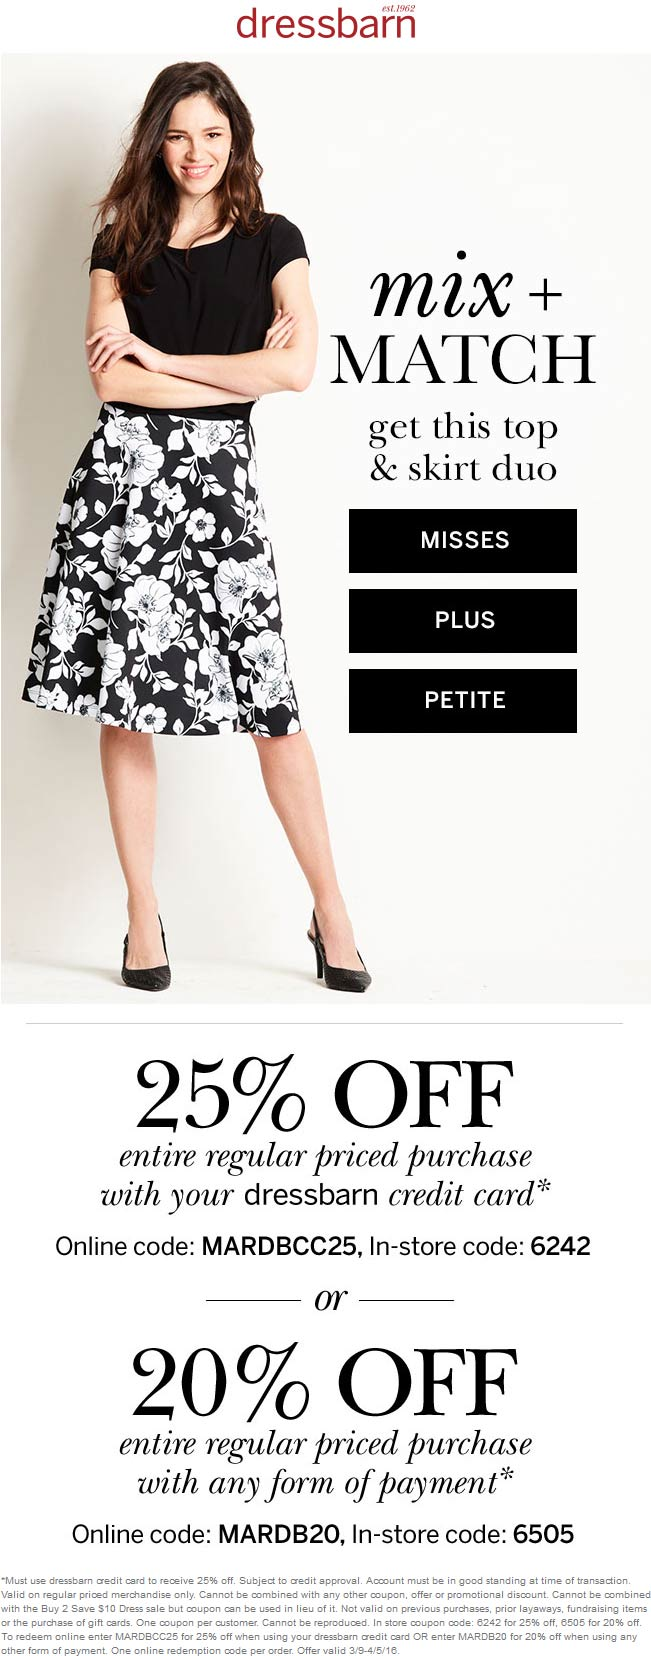 Dressbarn Coupon August 2018 20% off at Dressbarn, or online via promo code MARDB20